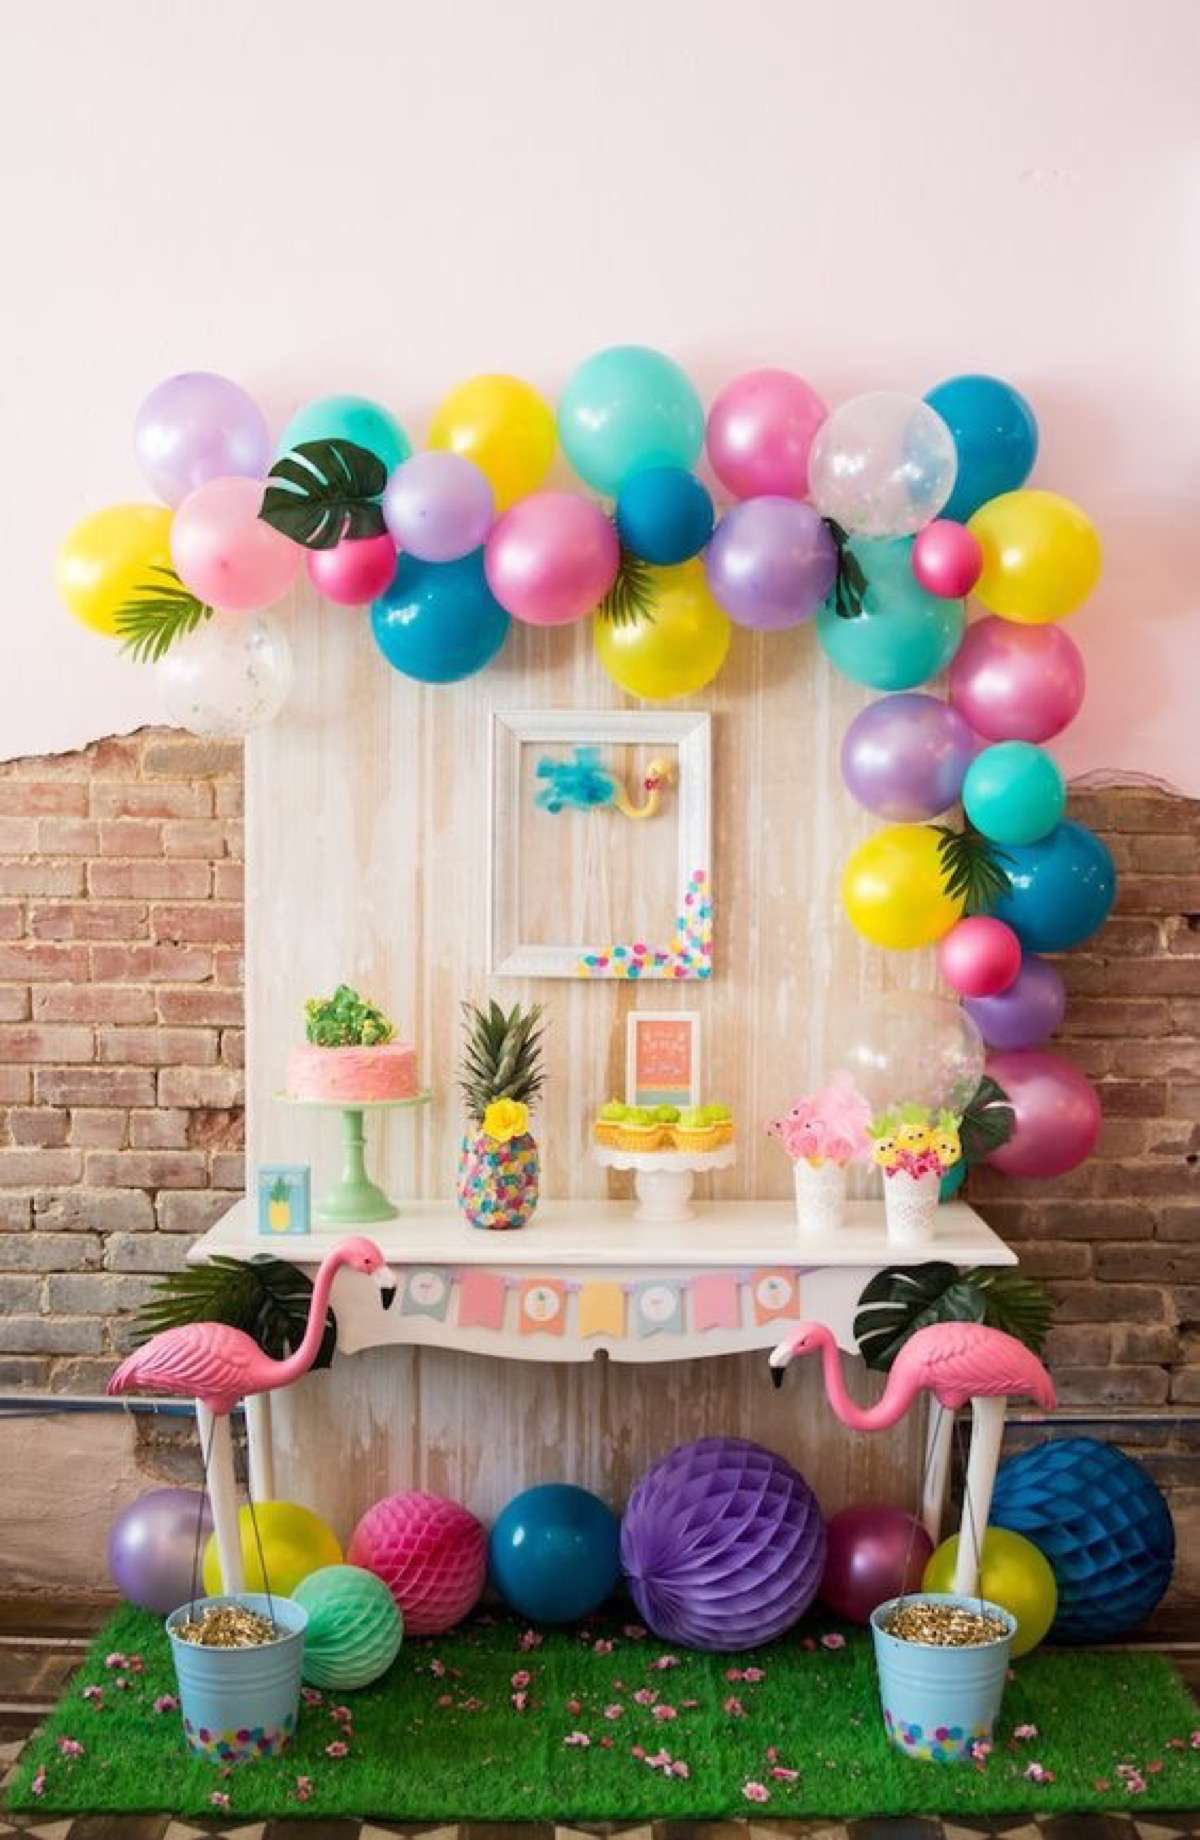 5 mesas decoradas para cumplea os y fechas especiales - Ideas decoracion cumpleanos ...